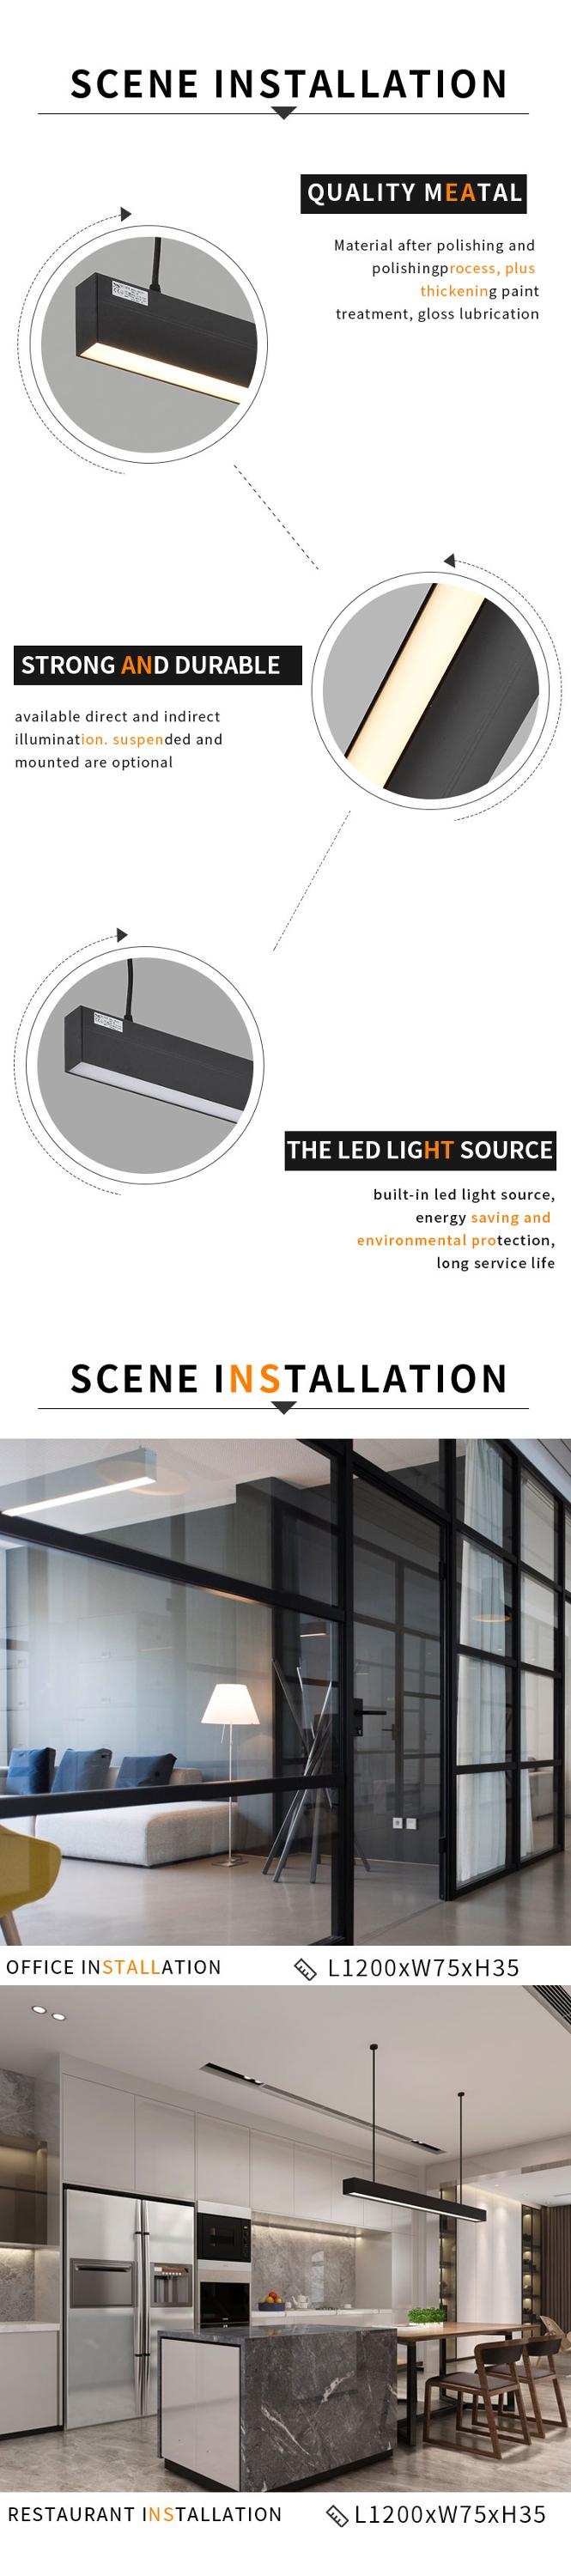 Office/Studio/School/Shopping Mall Wholesales Aluminum 20+36W Ceiling Pendant LED Linear Light 1.2M Length